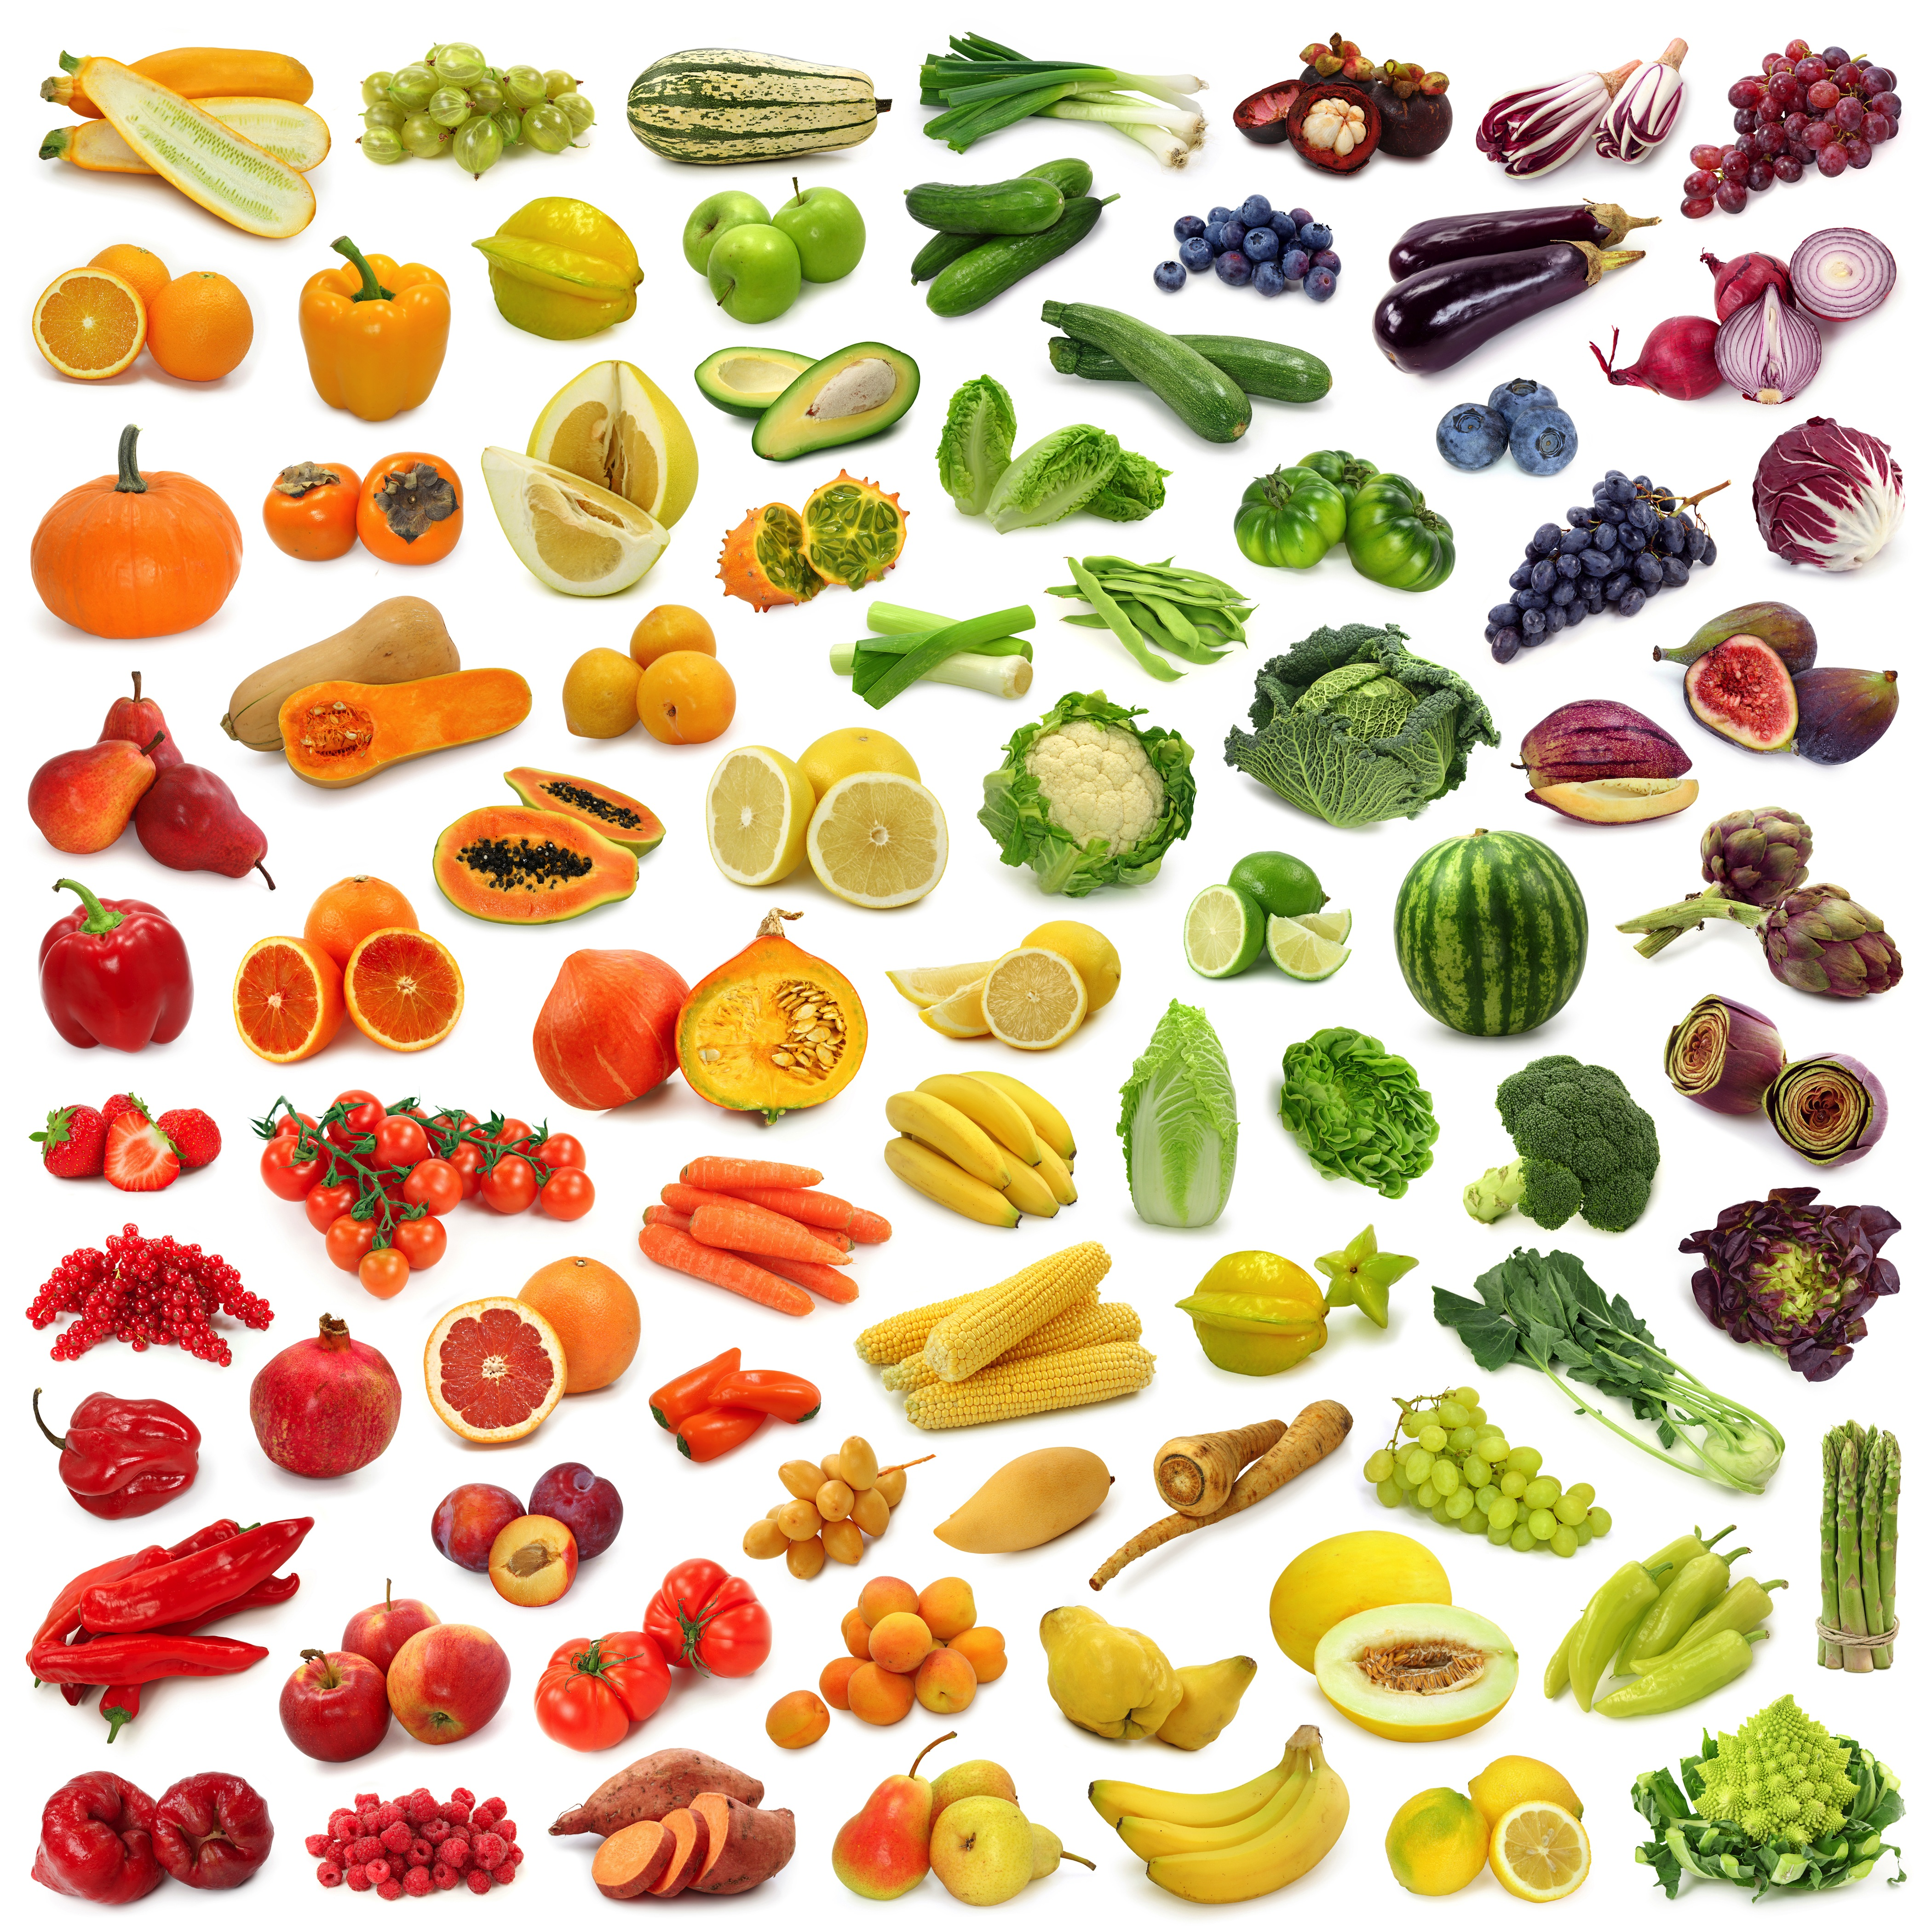 Taste The Rainbow Why We Want To Eat Fruits Amp Veggies From All Of The Colours Of The Rainbow